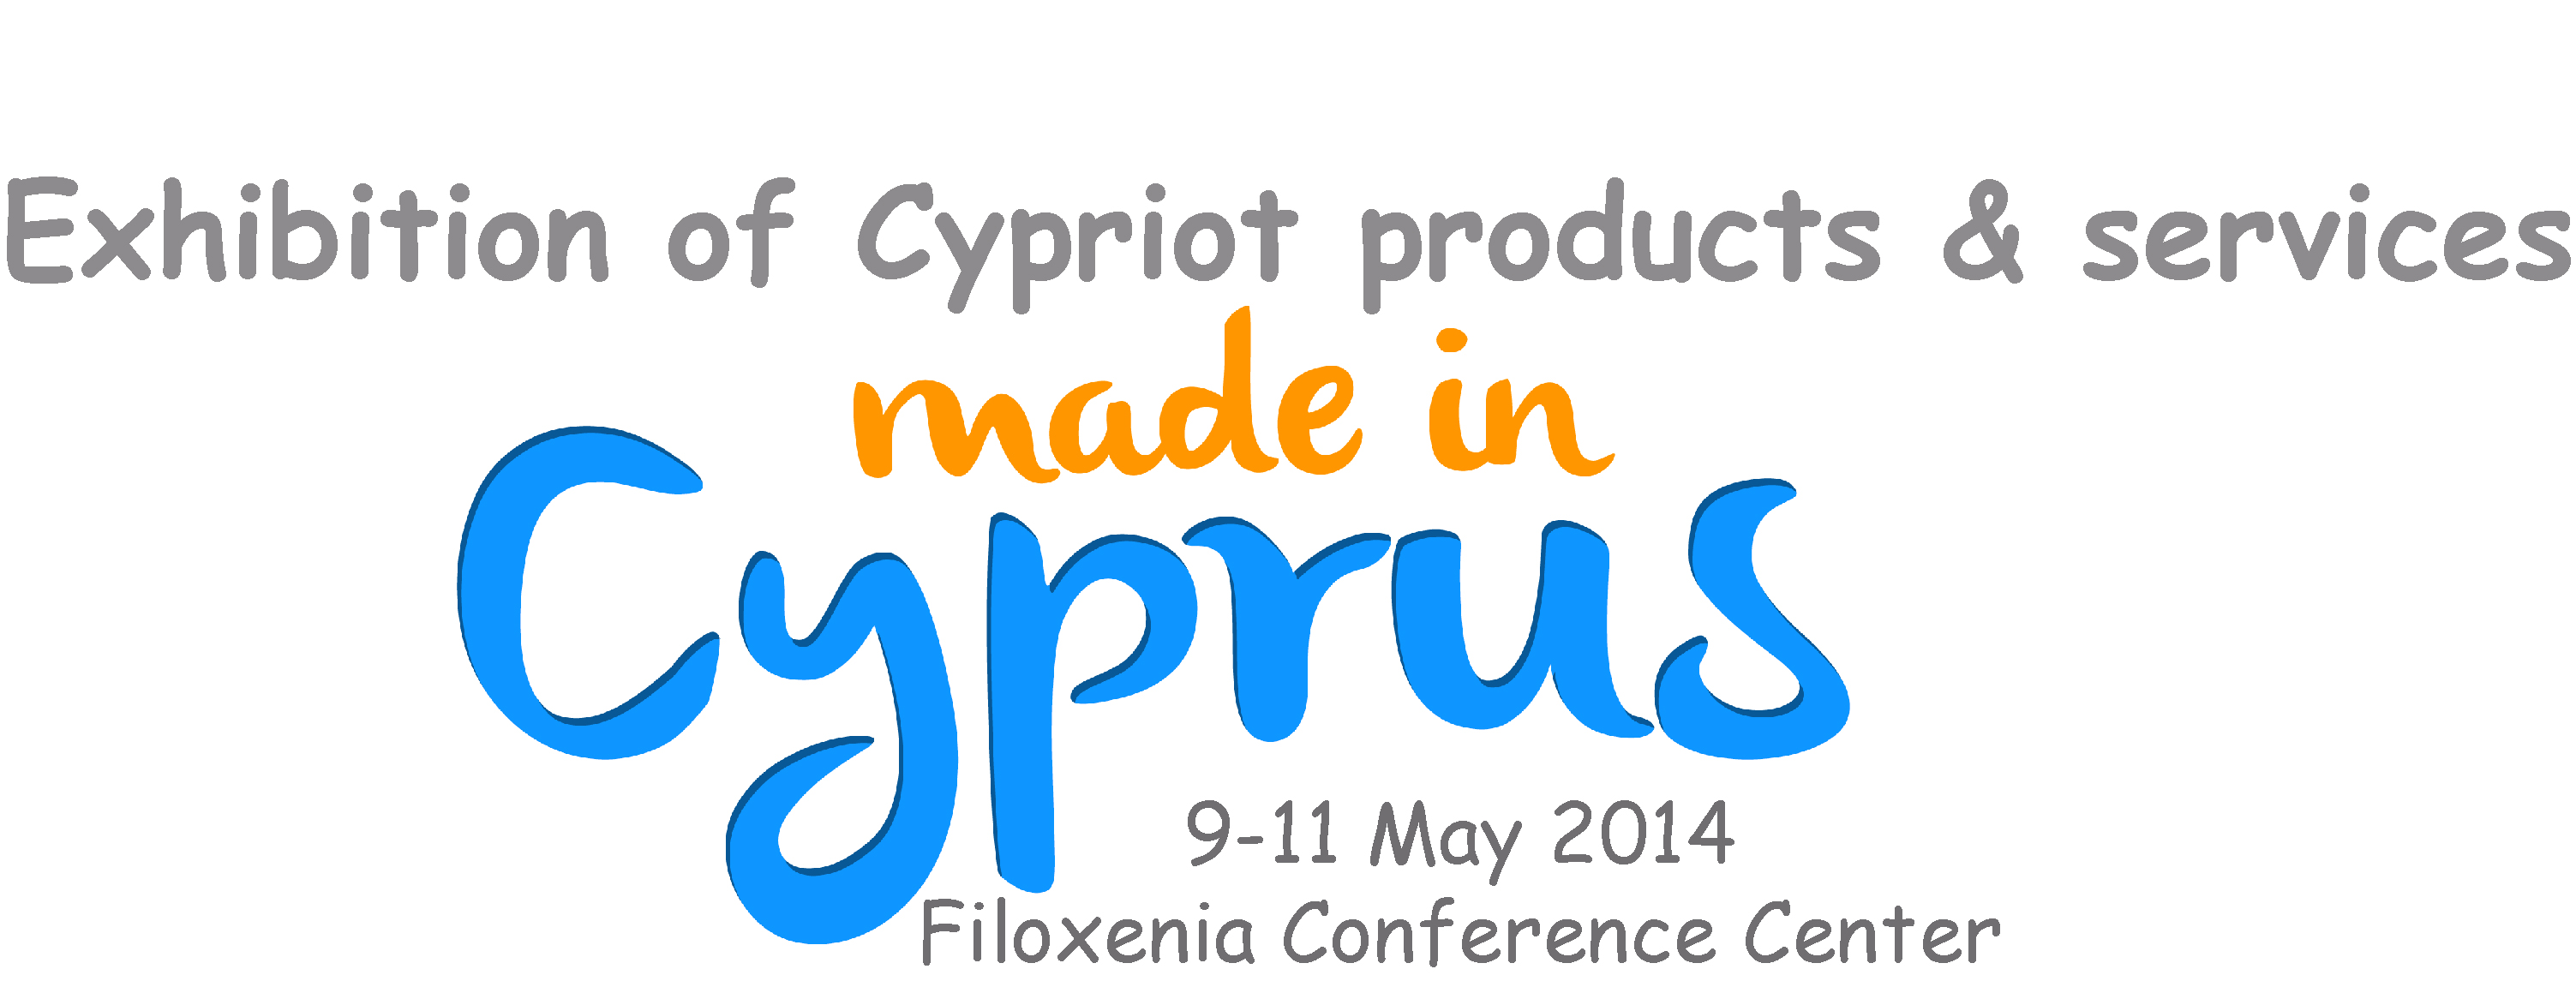 EXHIBITION OF CYPRUS PRODUCTS & SERVICES